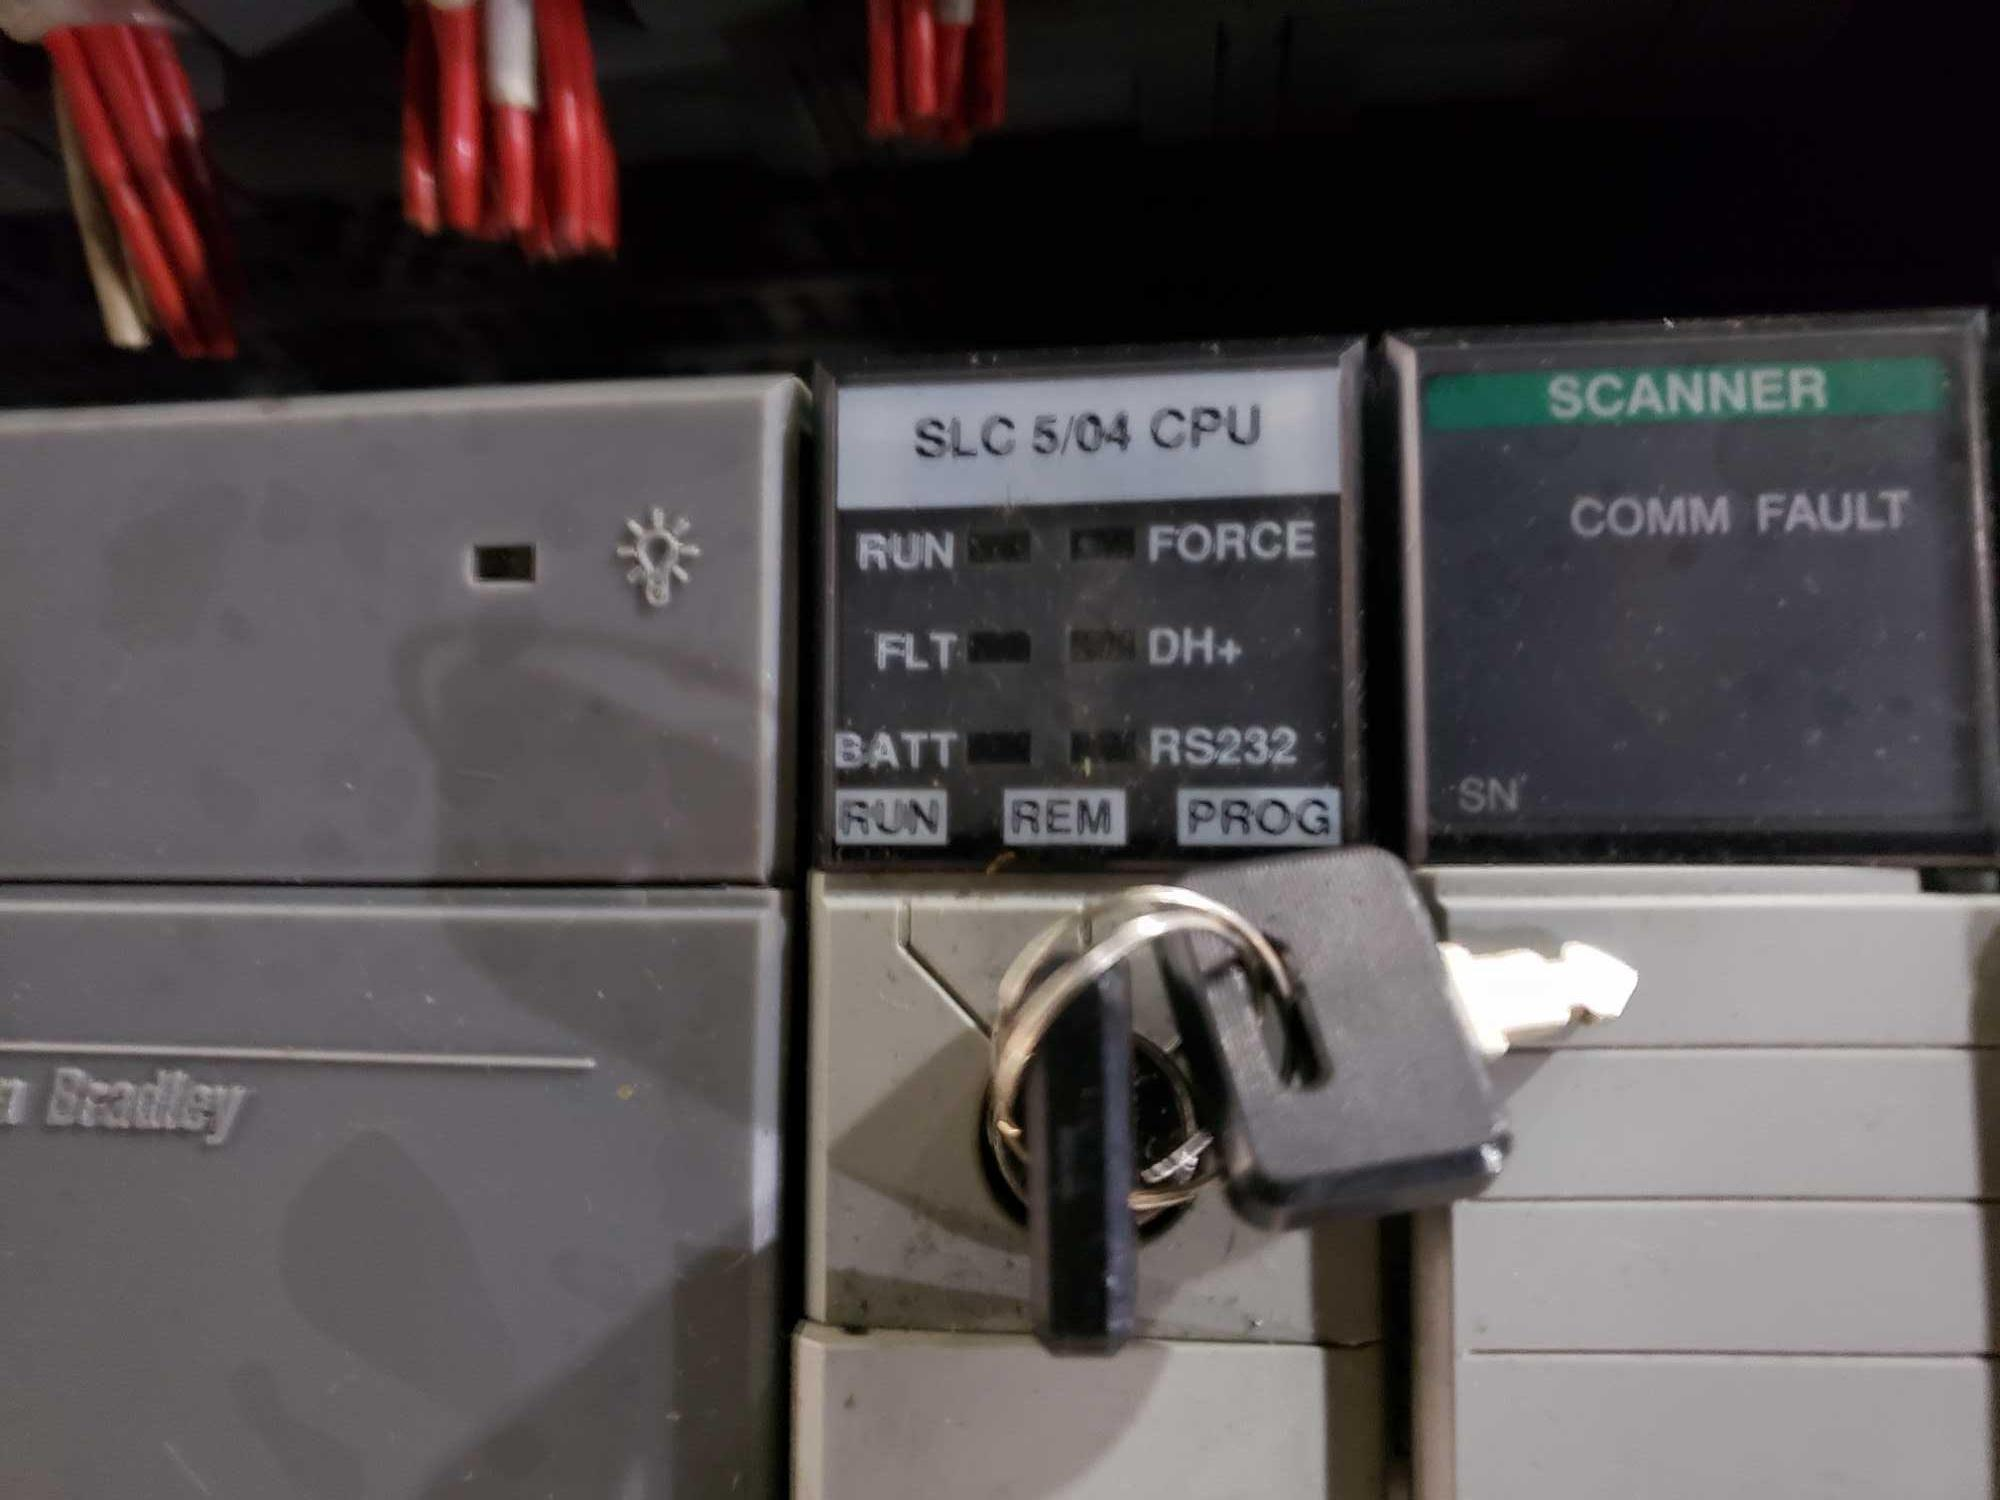 Lot 39 - Allen Bradley SLC500 rack includes SLC5/04 CPU, scanners, inputs and outputs